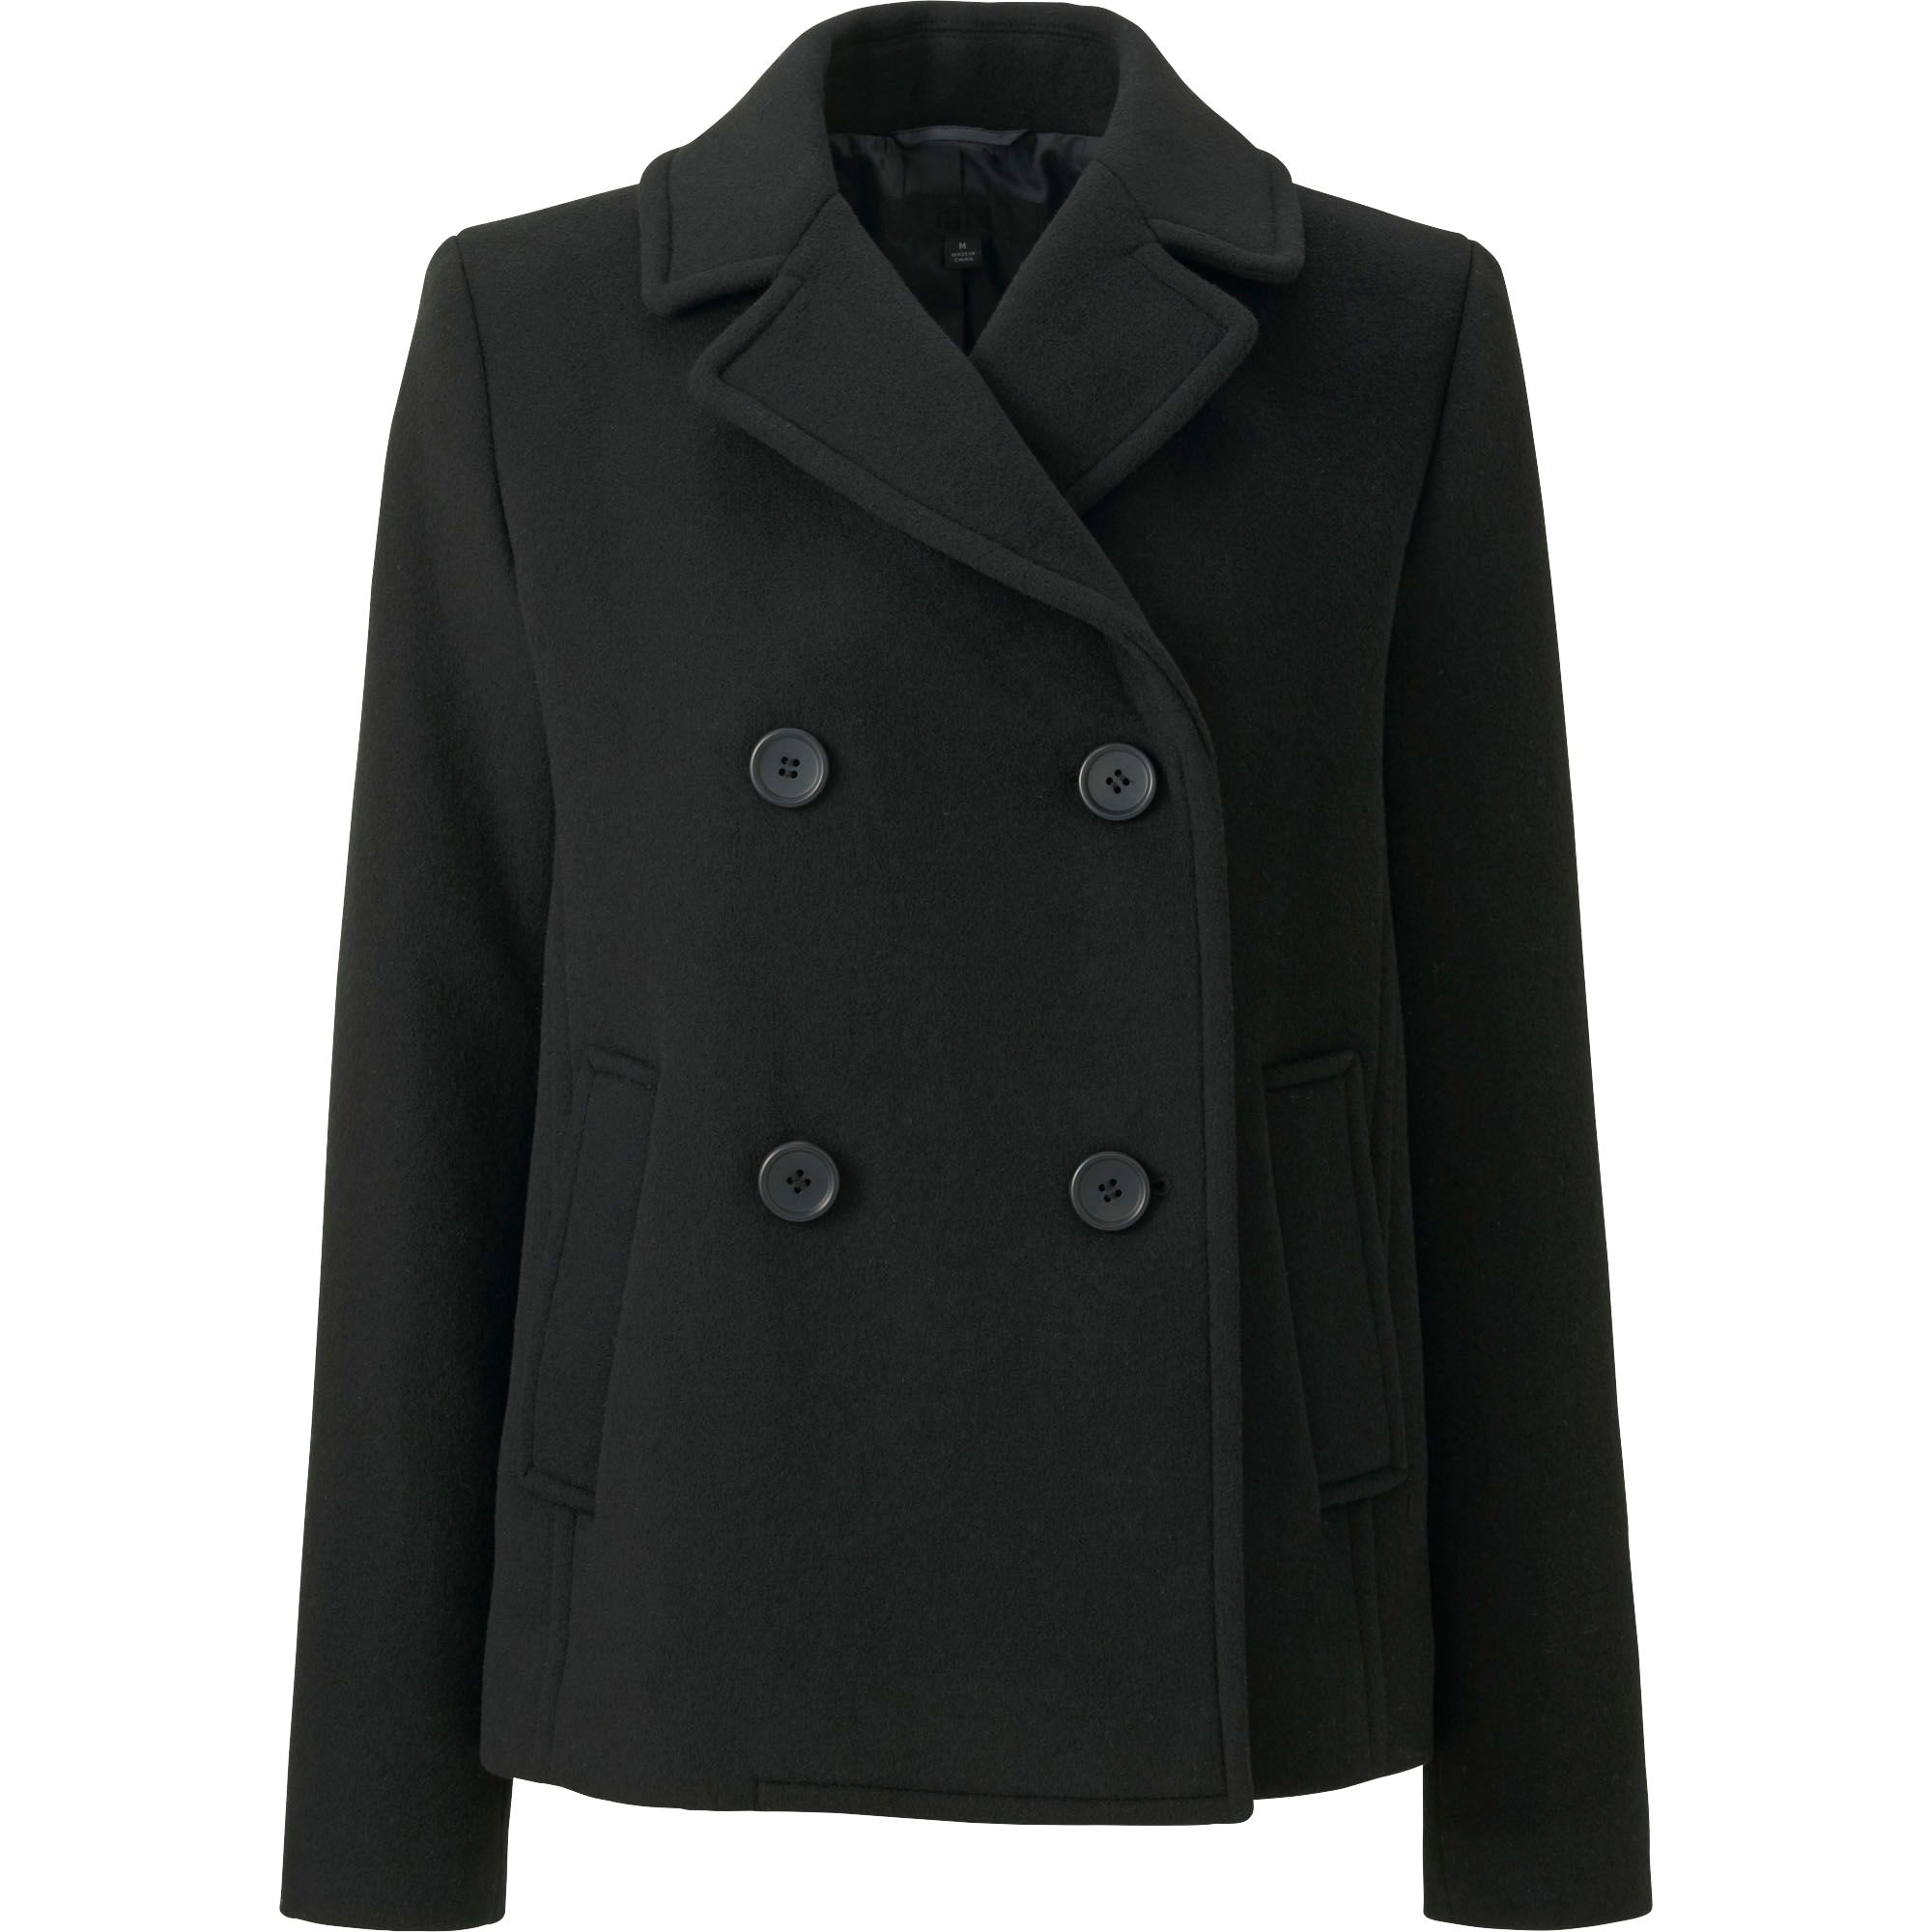 Liz Claiborne Midweight Peacoat-Plus. Add To Cart. $ Columbia® Rain to Fame™ Waterproof Hooded Jacket () Excelled® Faux-Wool Belted Trench Coat - Plus. Add To Cart. Only at JCP. $ after coupon. a.n.a Lightweight Motorcycle Jacket (1) Women's Nike Gym Vintage Lightweight Jacket (10) Add To Cart. $ after coupon.